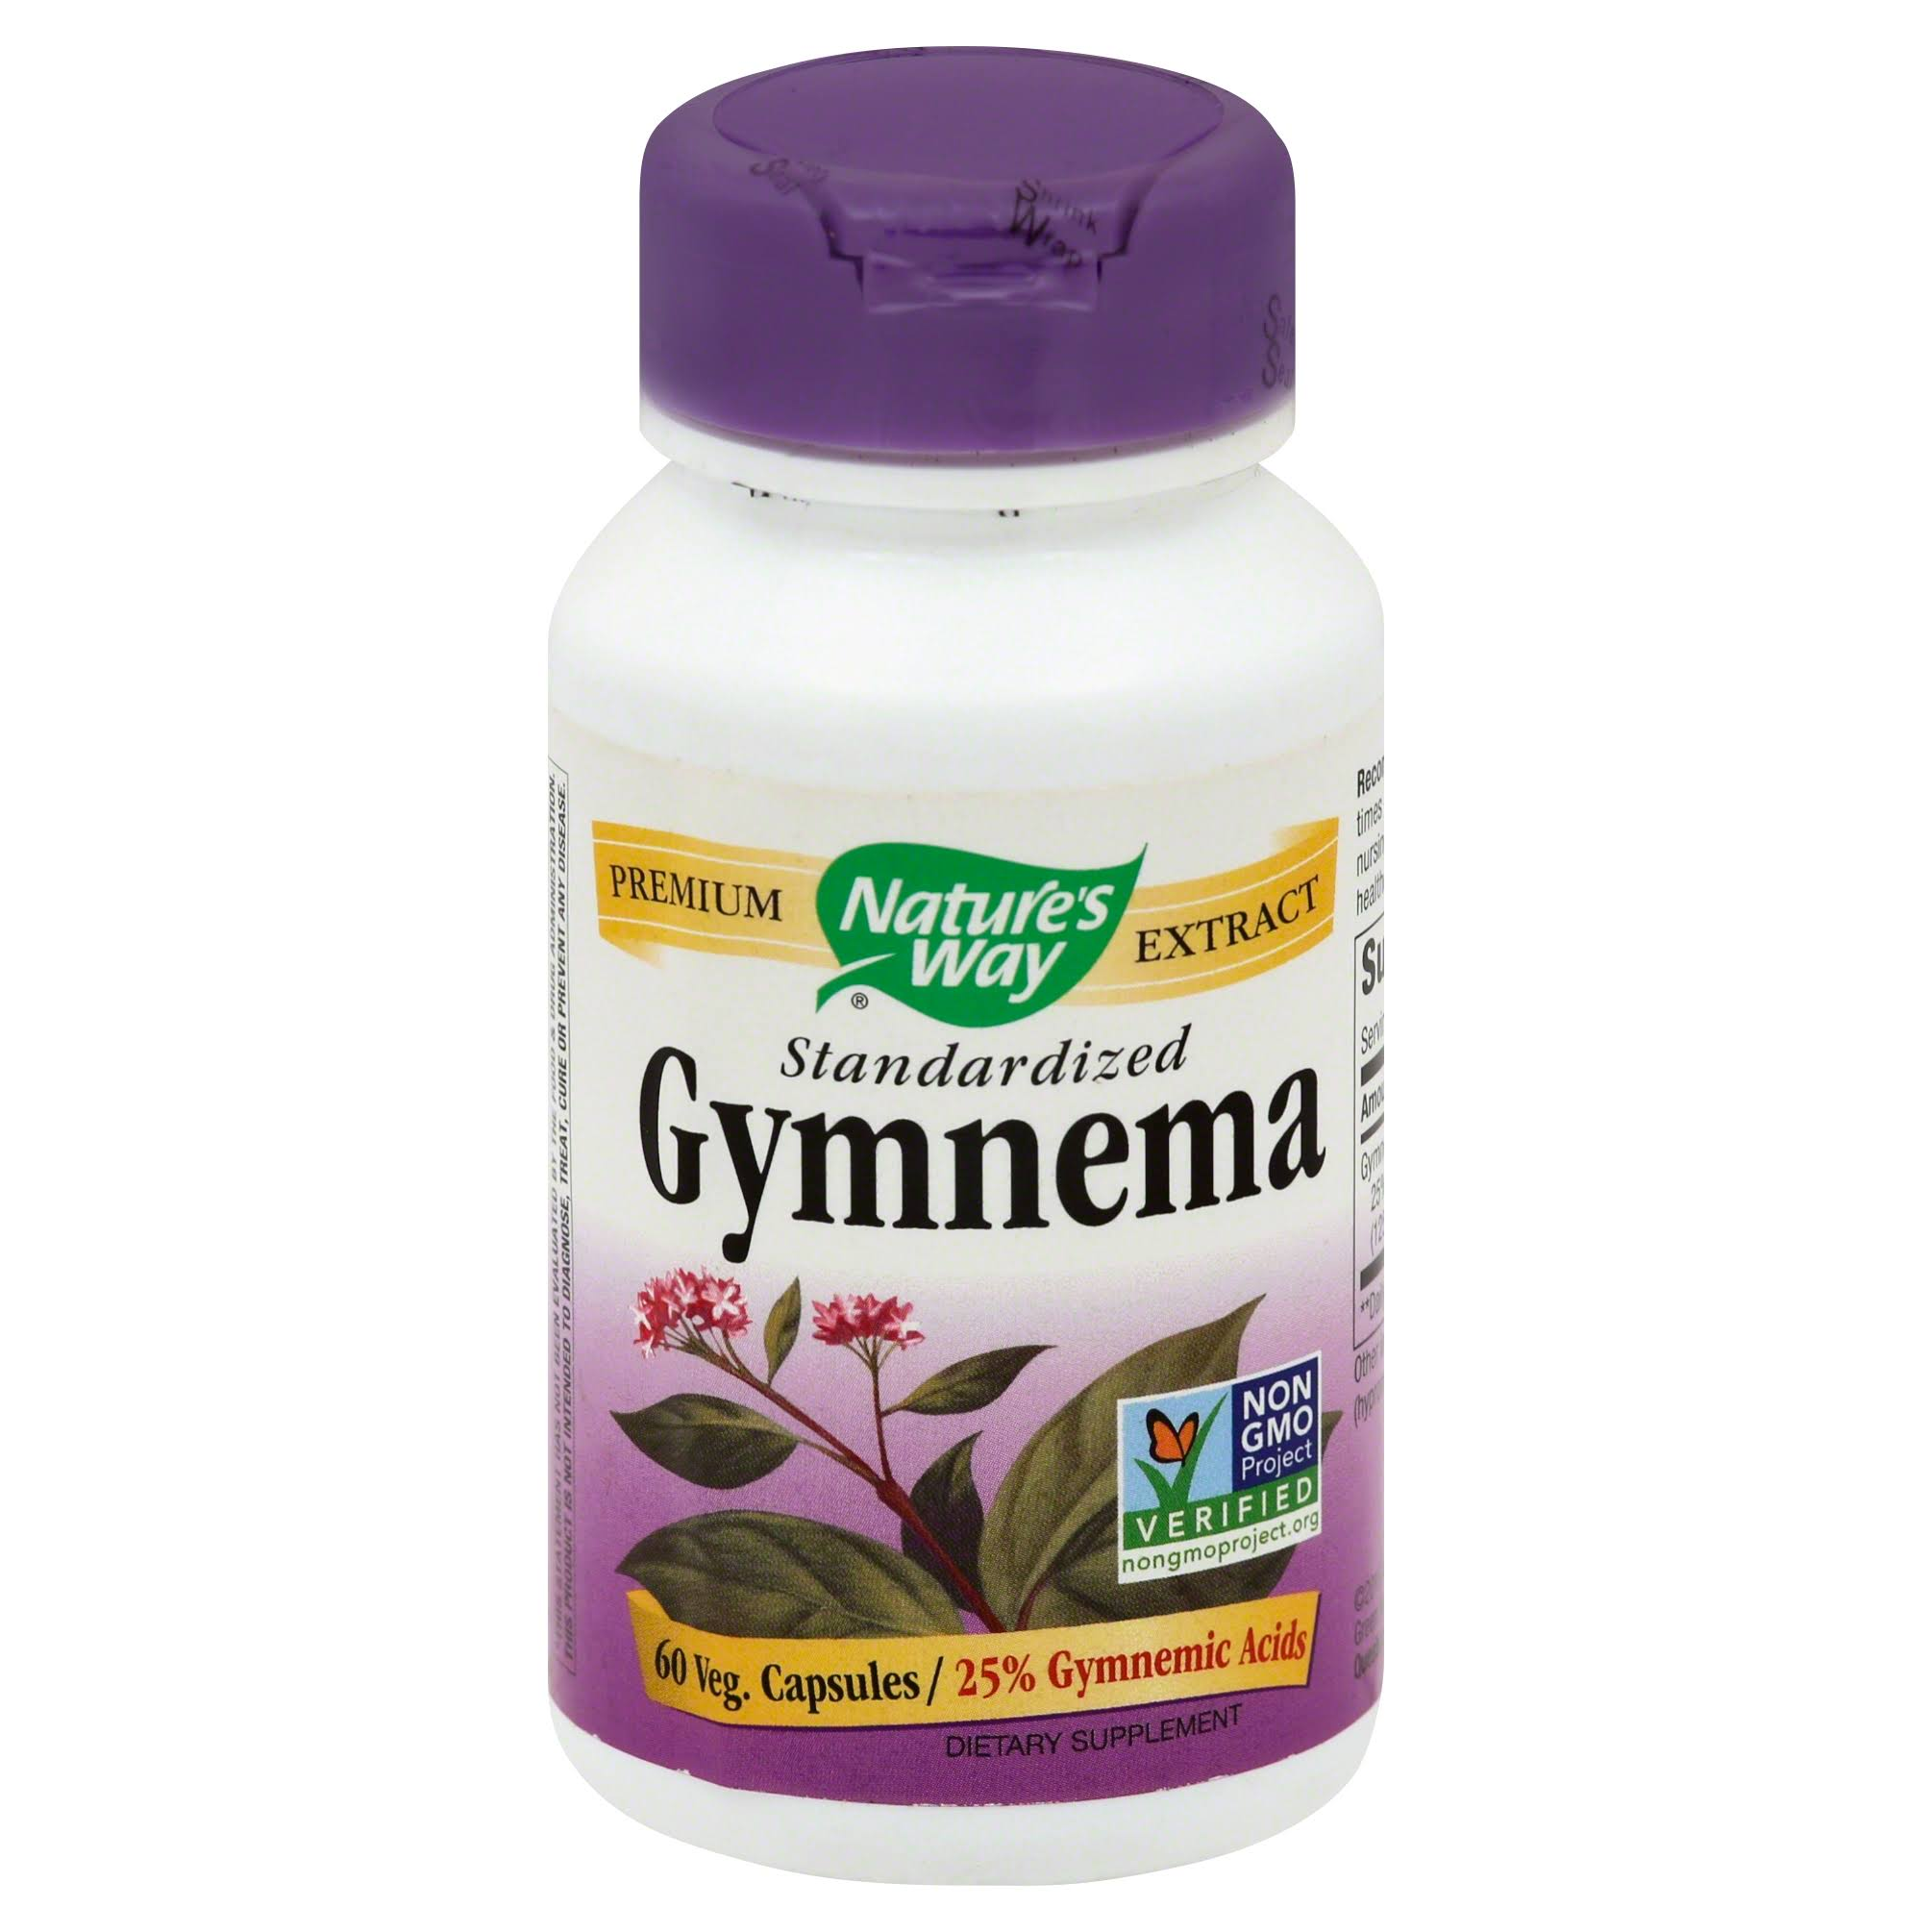 Nature's Way Gymnema Standardized Supplement - 60 Capsules